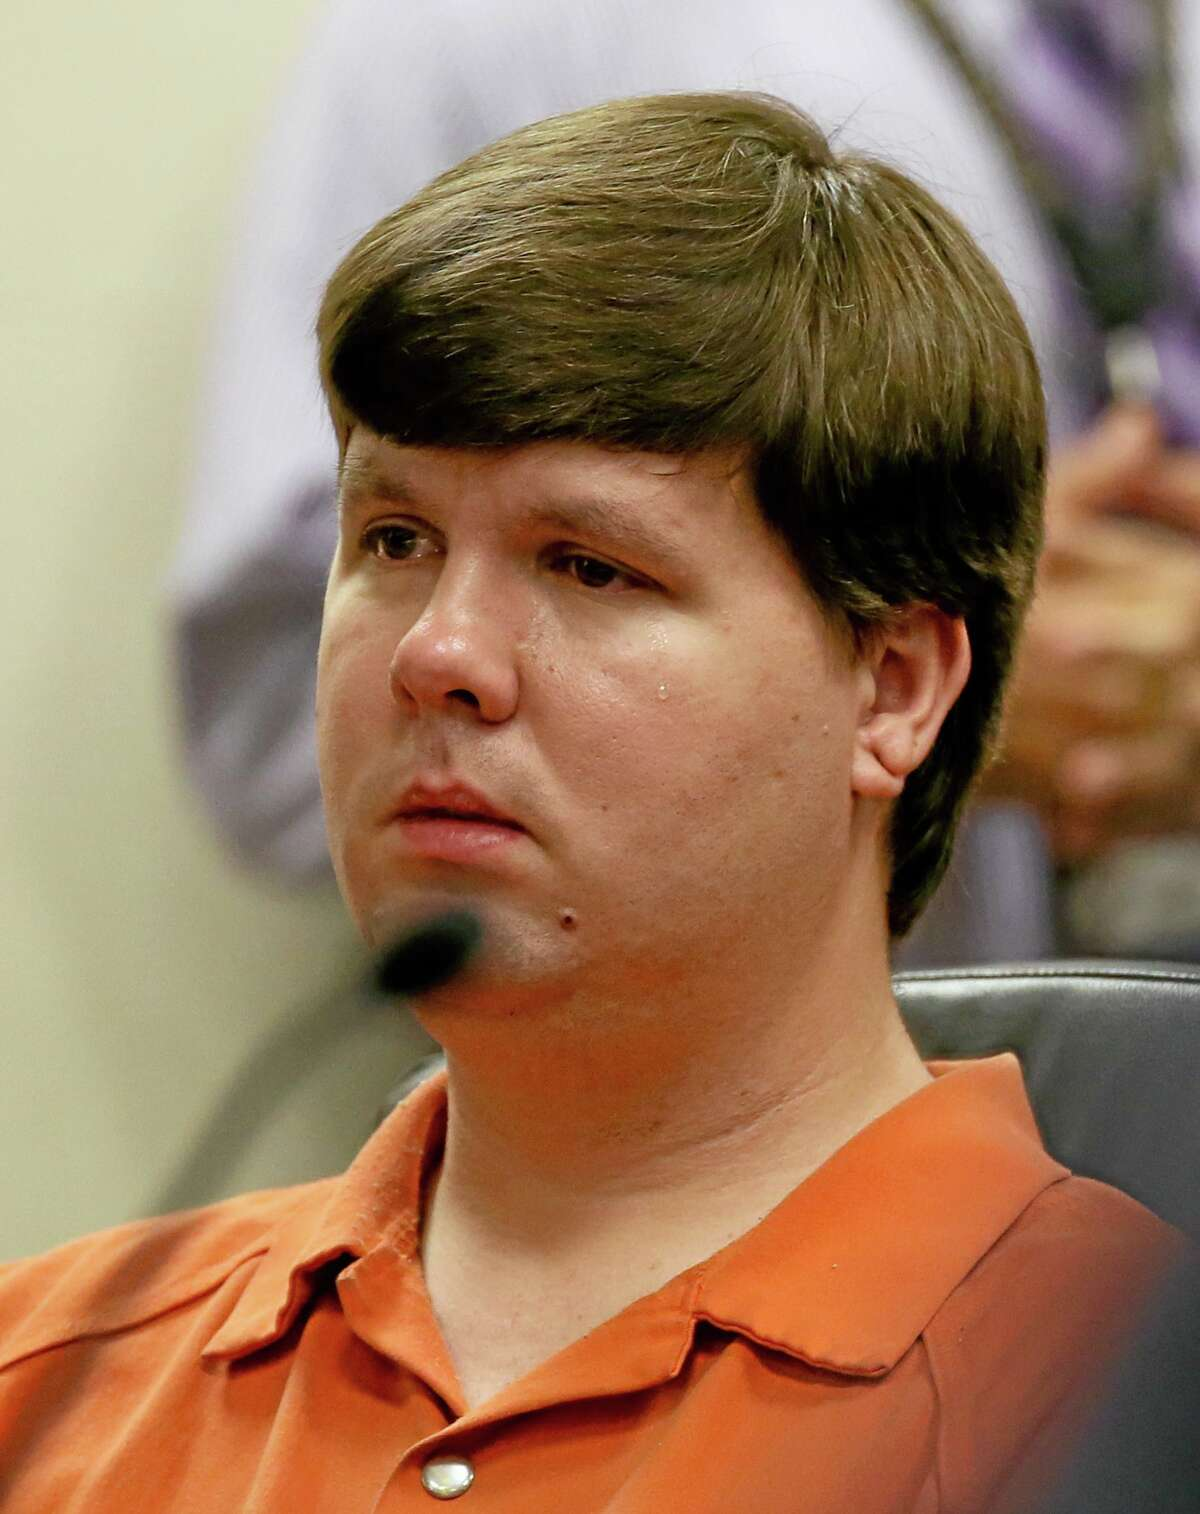 A tear rolls down the cheek of Justin Ross Harris, the father of a toddler who died after police say he was left in a hot car for about seven hours, as he sits during his bond hearing in Cobb County Magistrate Court, Thursday, July 3, 2014, in Marietta, Ga. (AP Photo/Marietta Daily Journal, Kelly J. Huff, Pool)